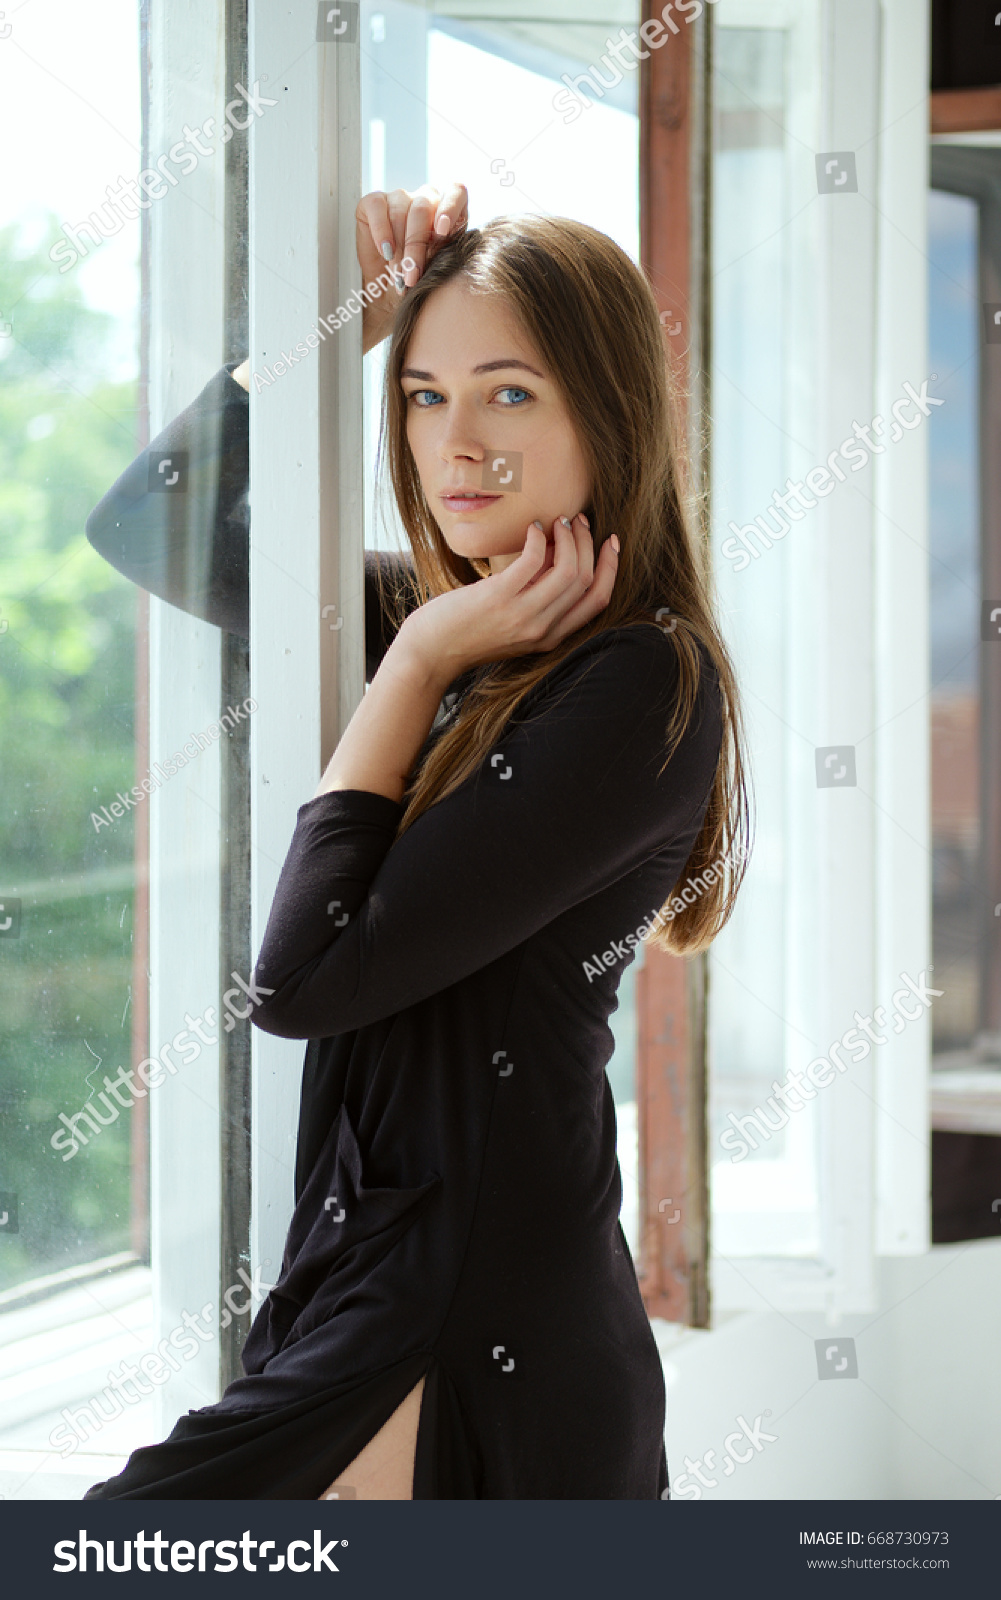 Cute Young Woman Dressing Gown By Stock Photo (Edit Now) 668730973 ...